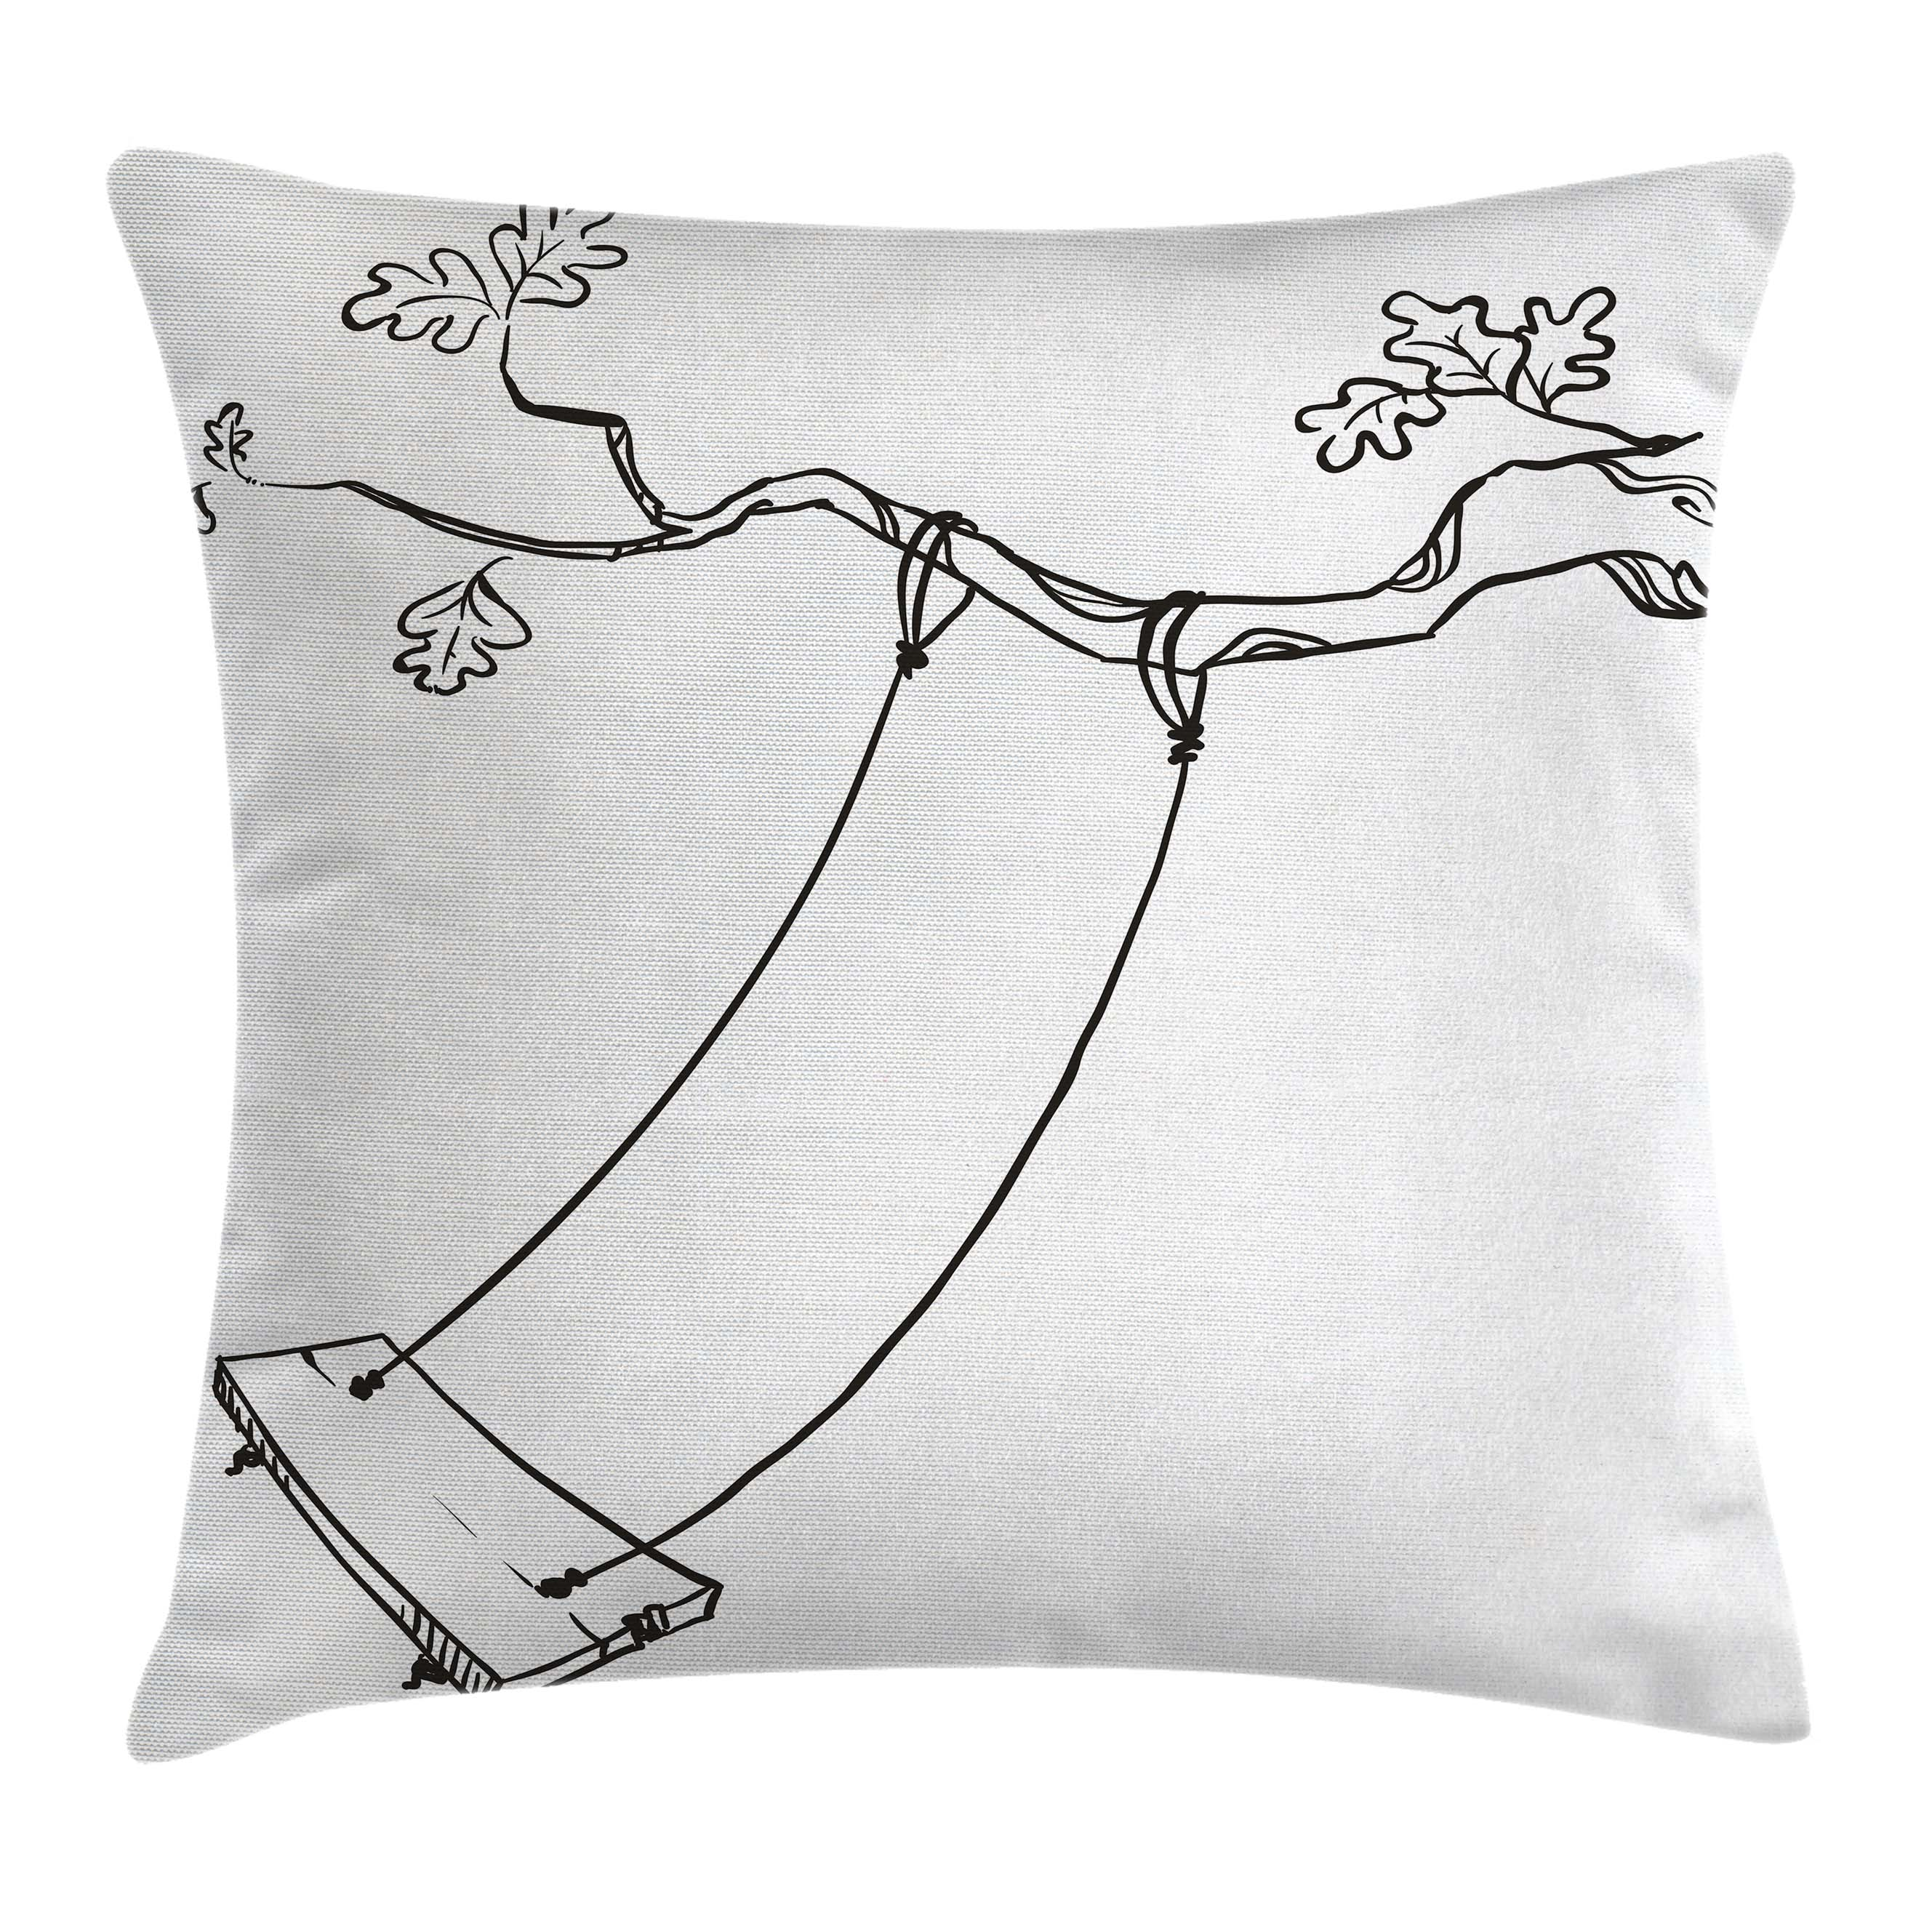 Outdoor Throw Pillow Cushion Cover, Sketchy Leaves Tree Branch with a Swing and Word of Joy Garden Park Play Childhood, Decorative Square Accent Pillow Case, 20 X 20 Inches, Black White, by Ambesonne